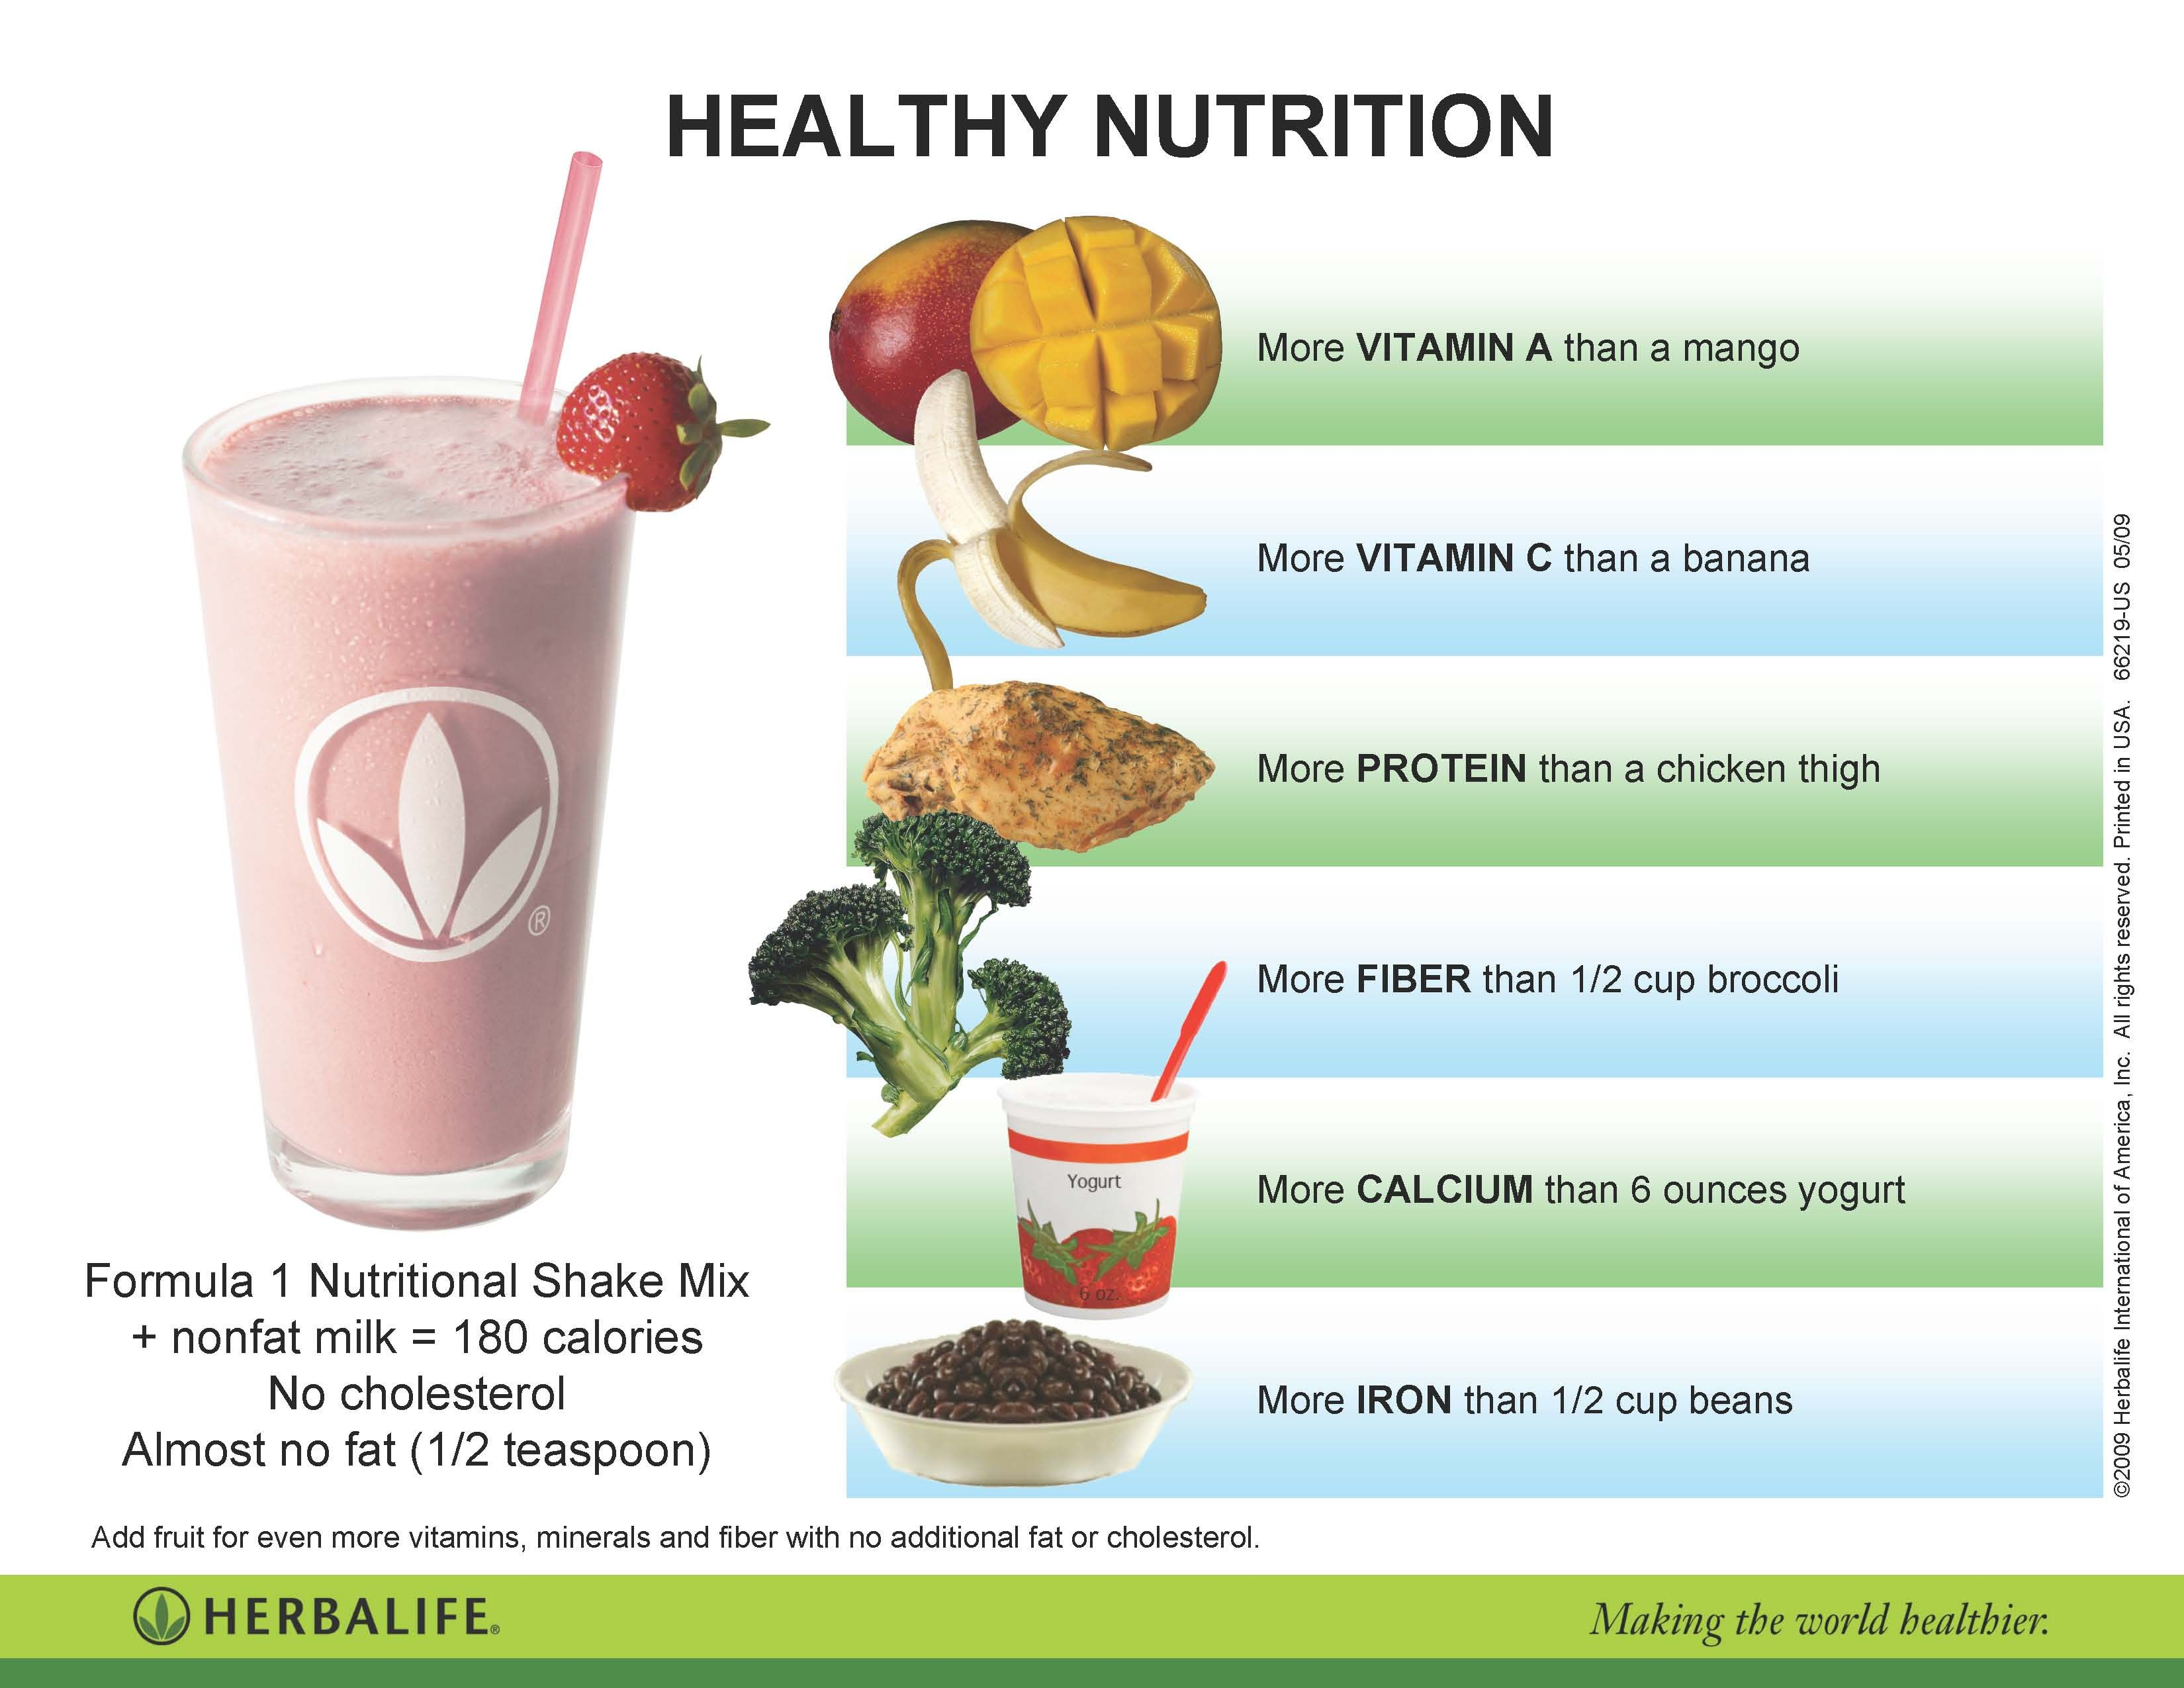 It is an image of Selective Herbalife Product Nutrition Labels